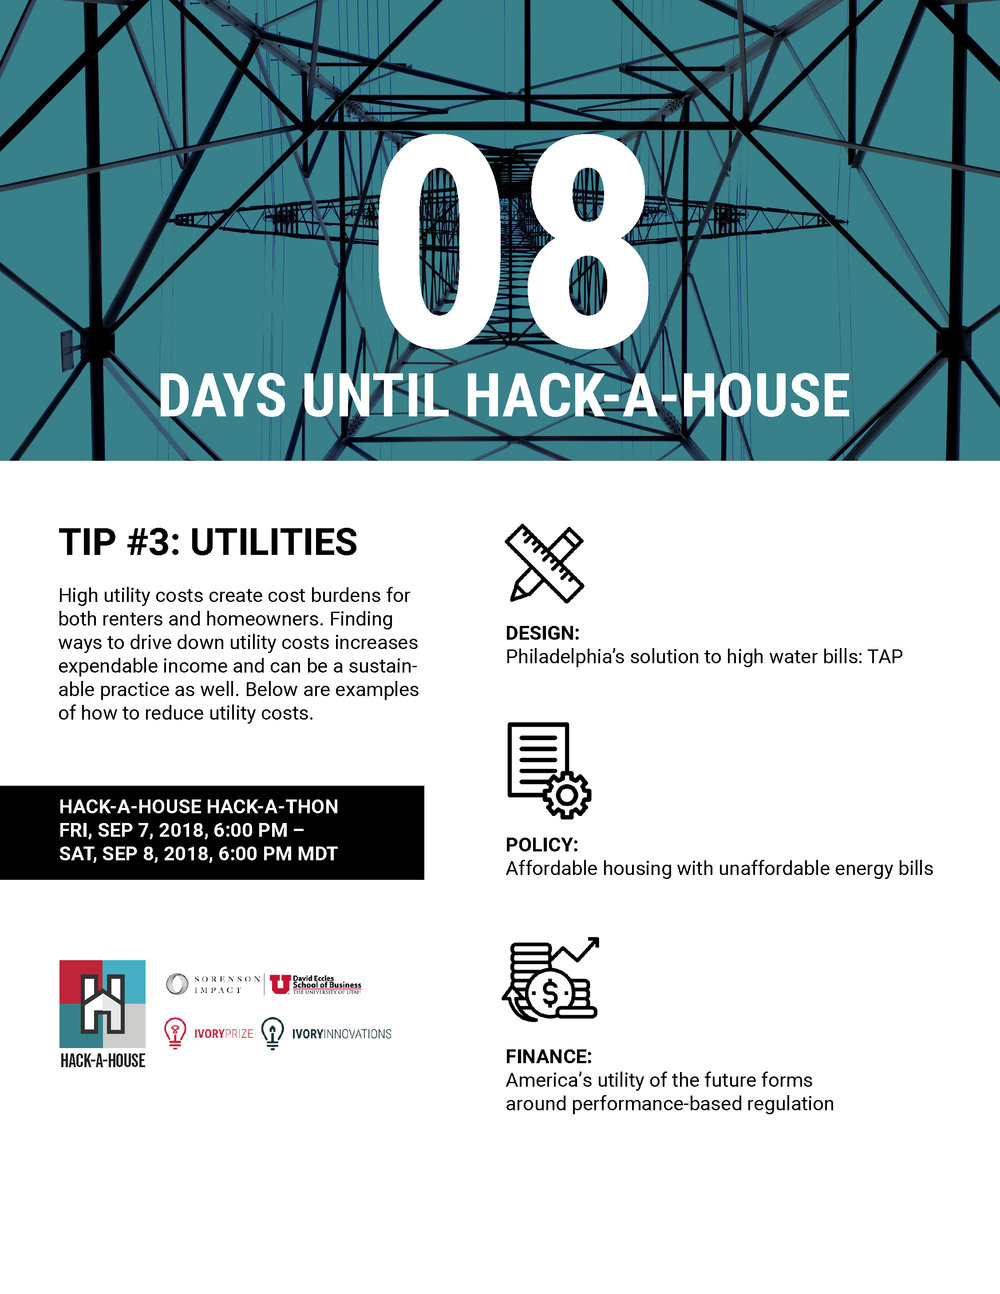 hack-a-house countdown_03.jpg